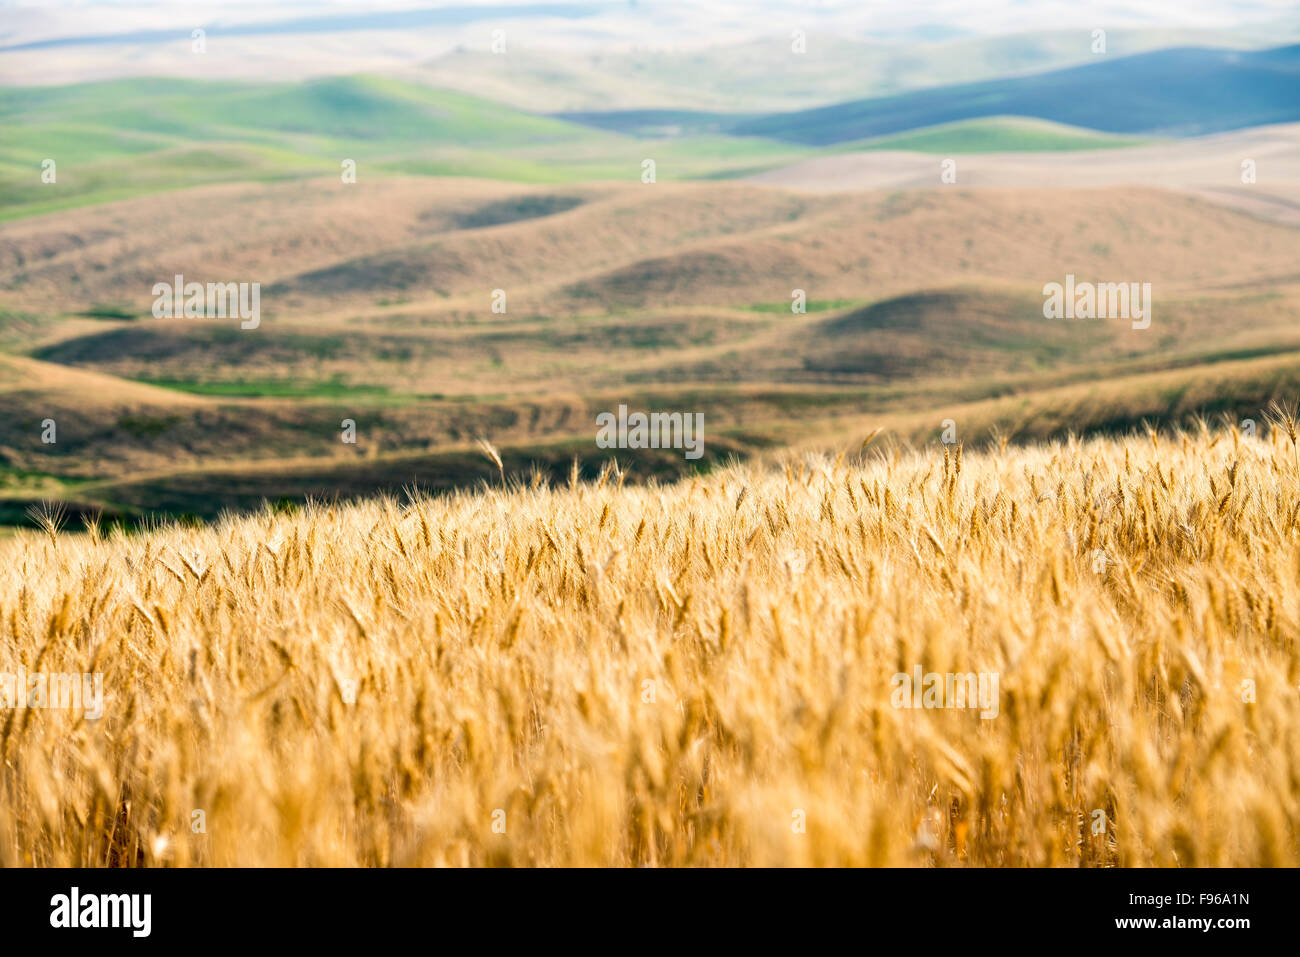 Wheat field with rolling hills of the Palouse in background. Washington State, USA. Stock Photo